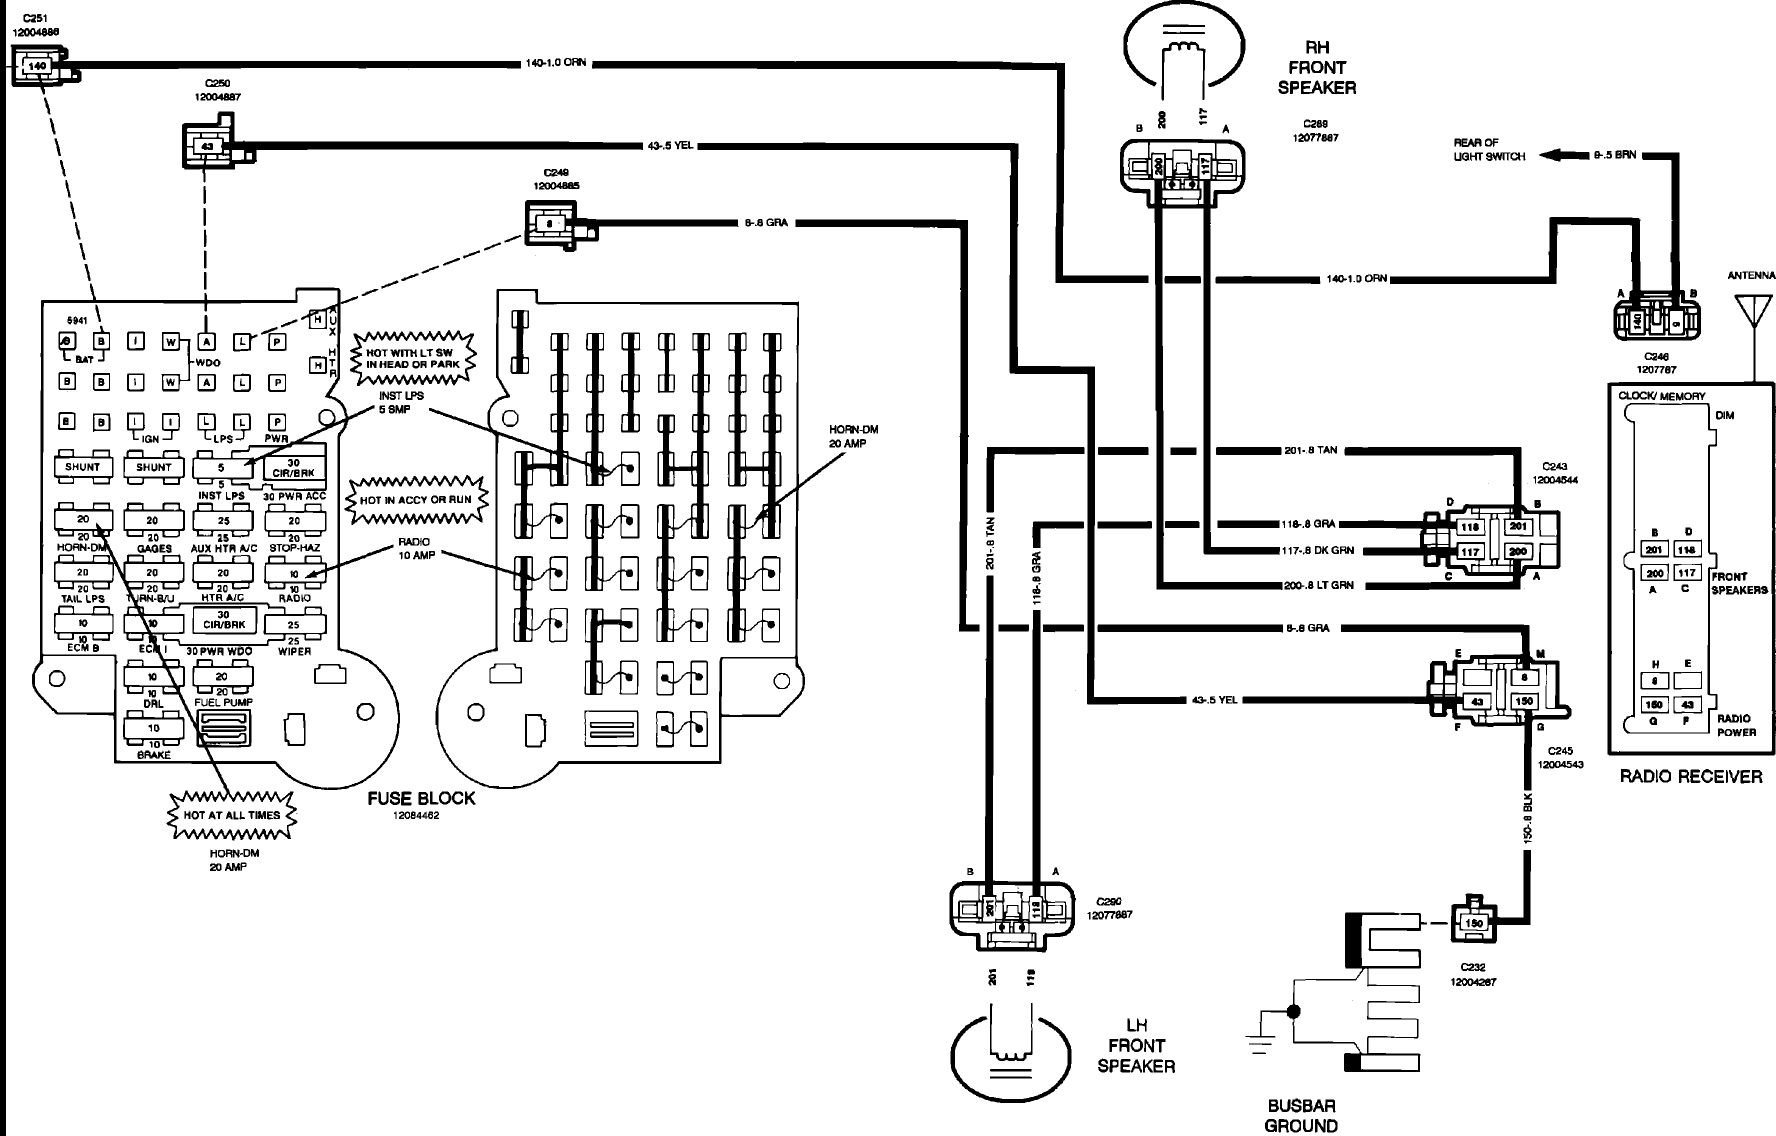 Diagram Chevy Van Fuse Panel Diagram Full Version